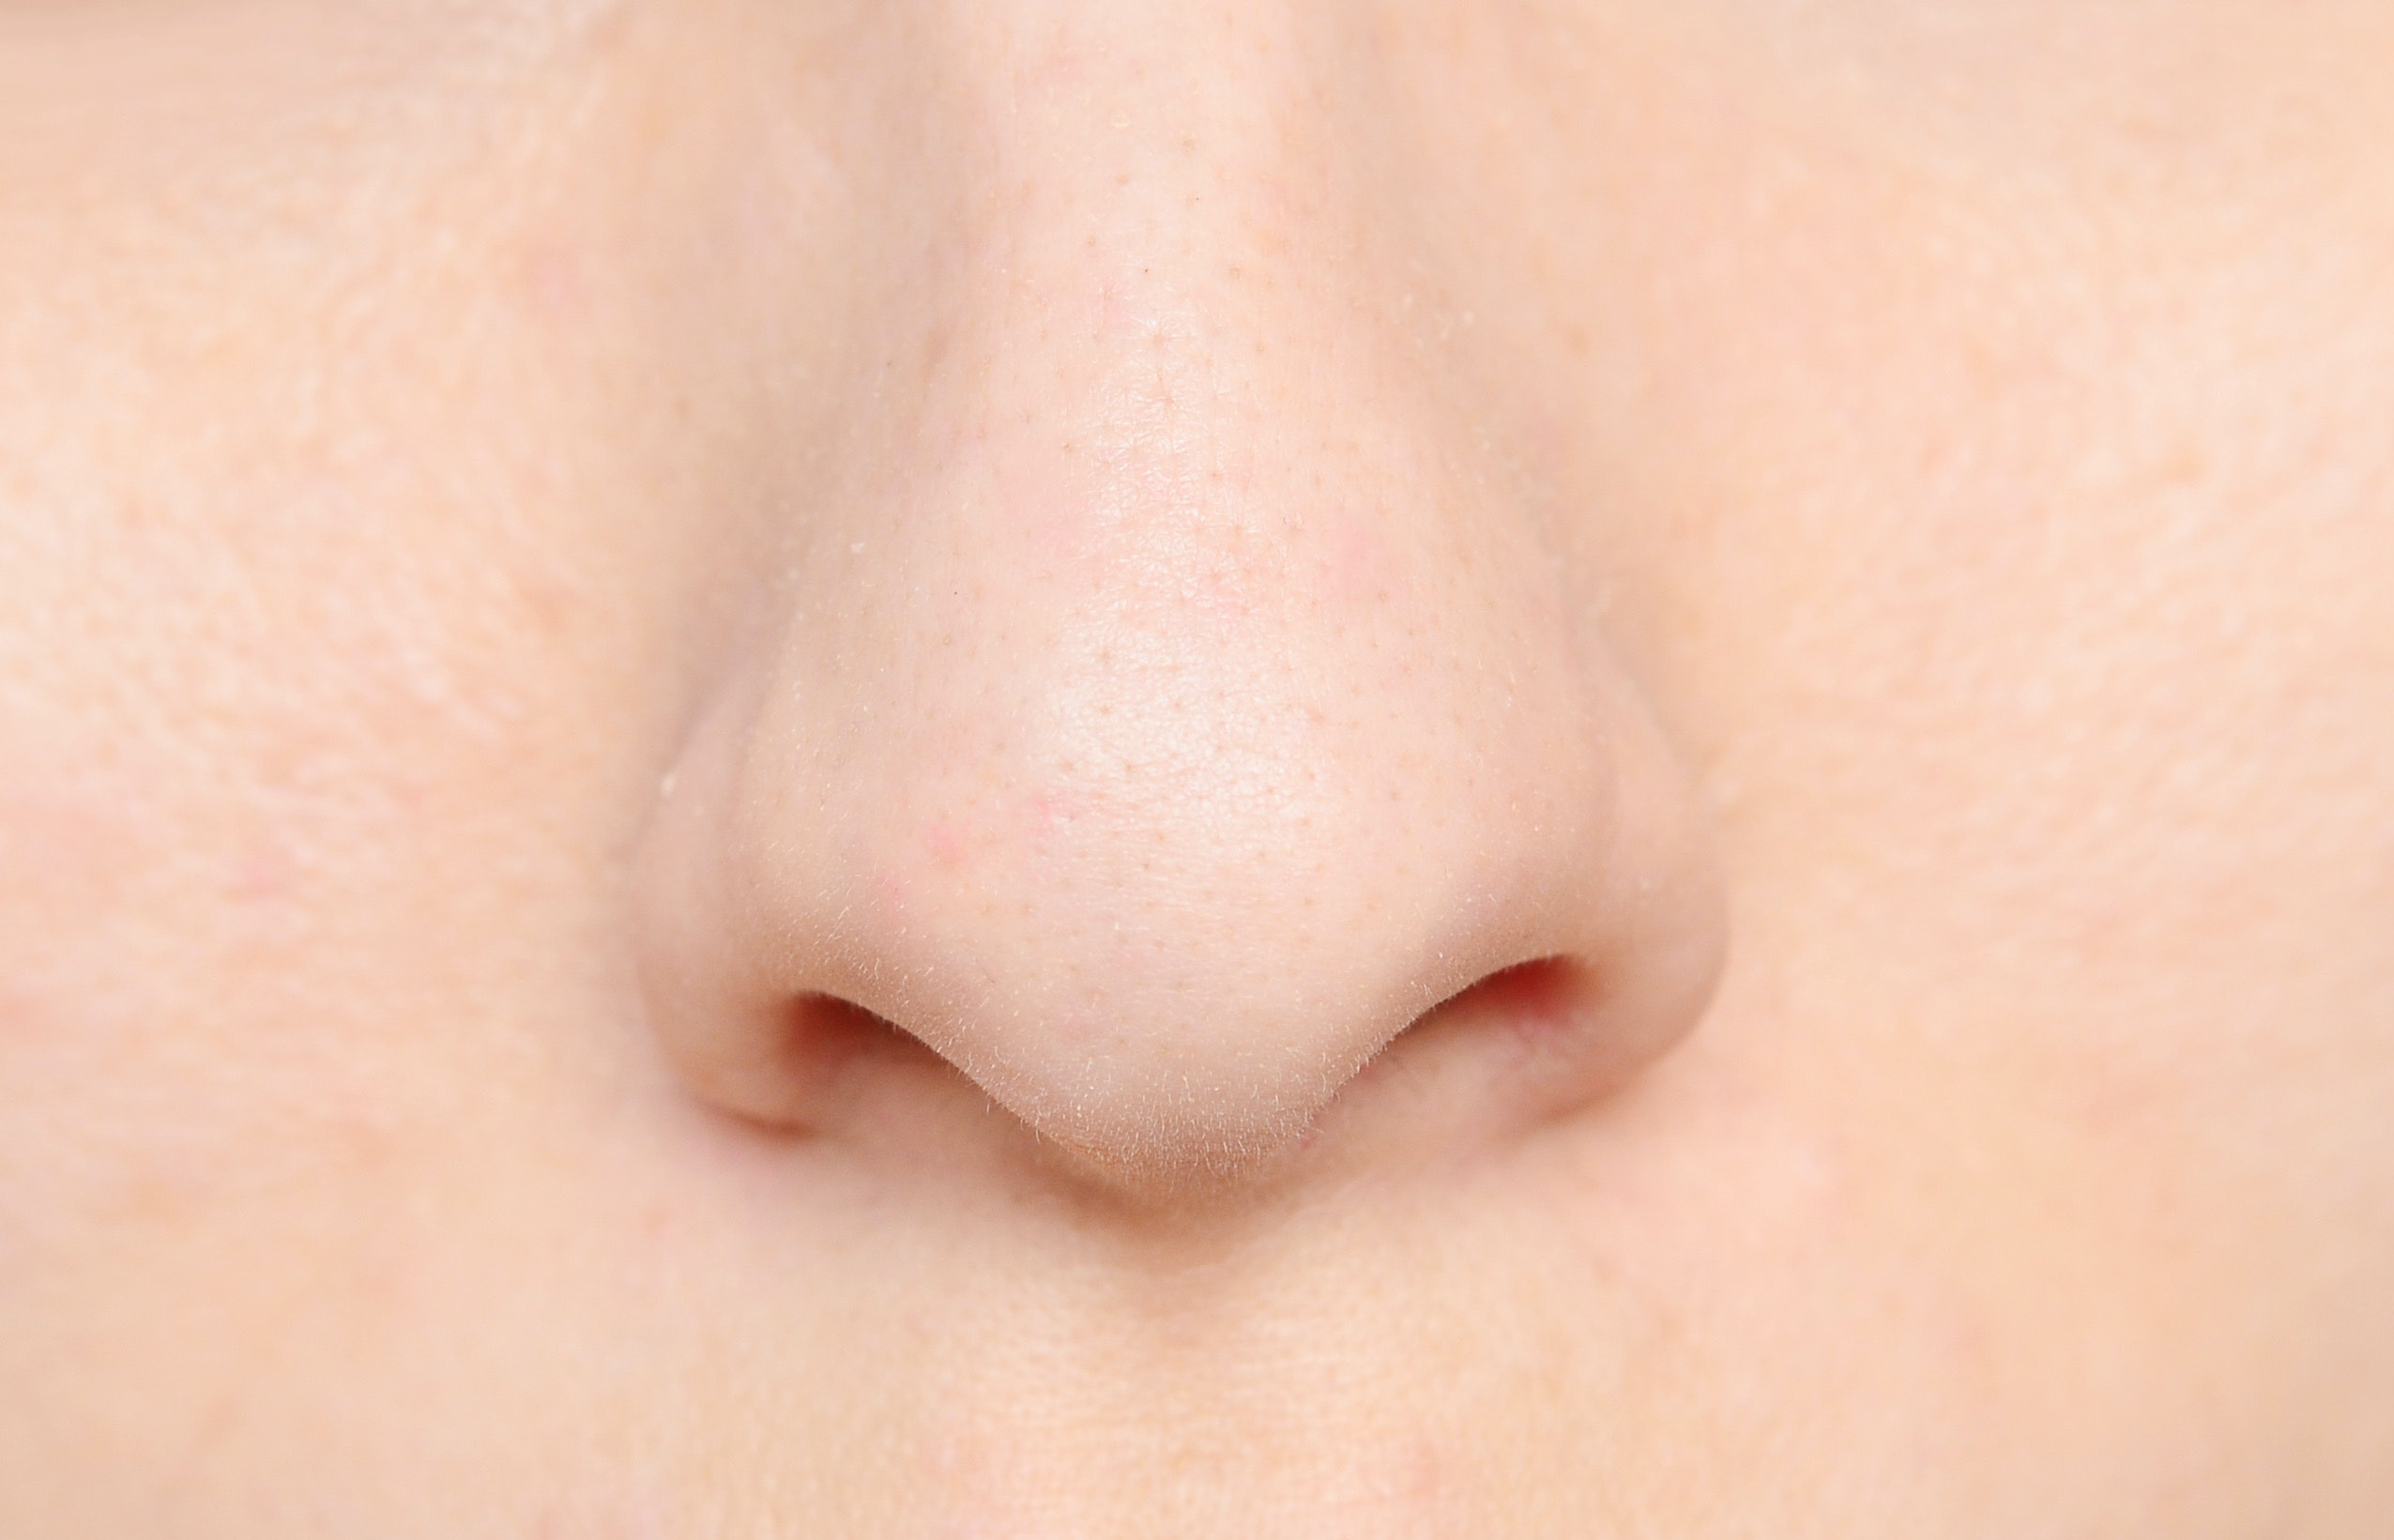 An image depicting a person suffering from numb nose symptoms